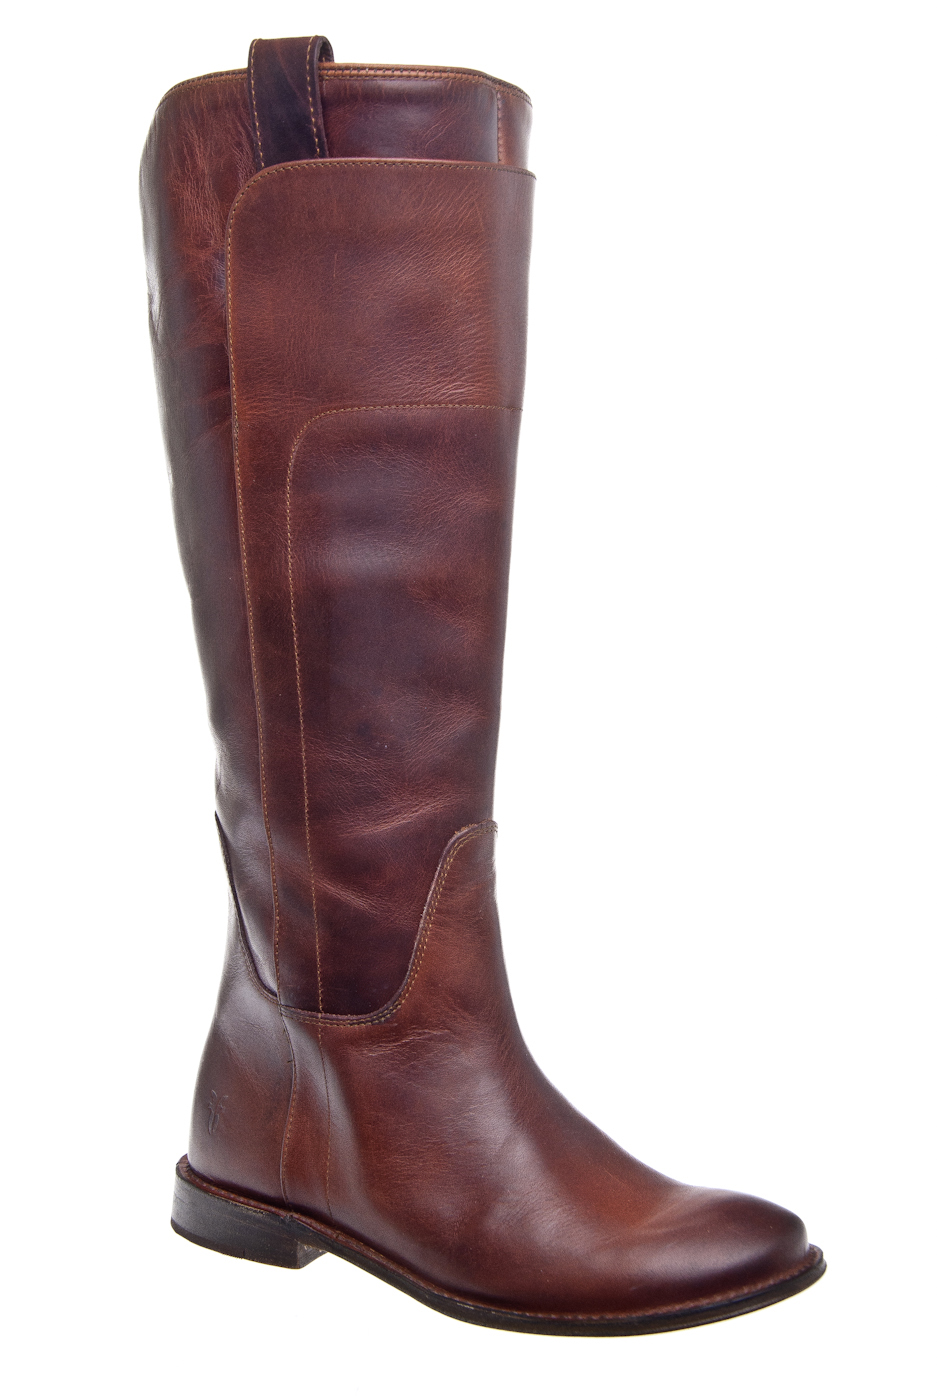 Frye Paige Tall Riding Casual Low Heel Boot - Cognac